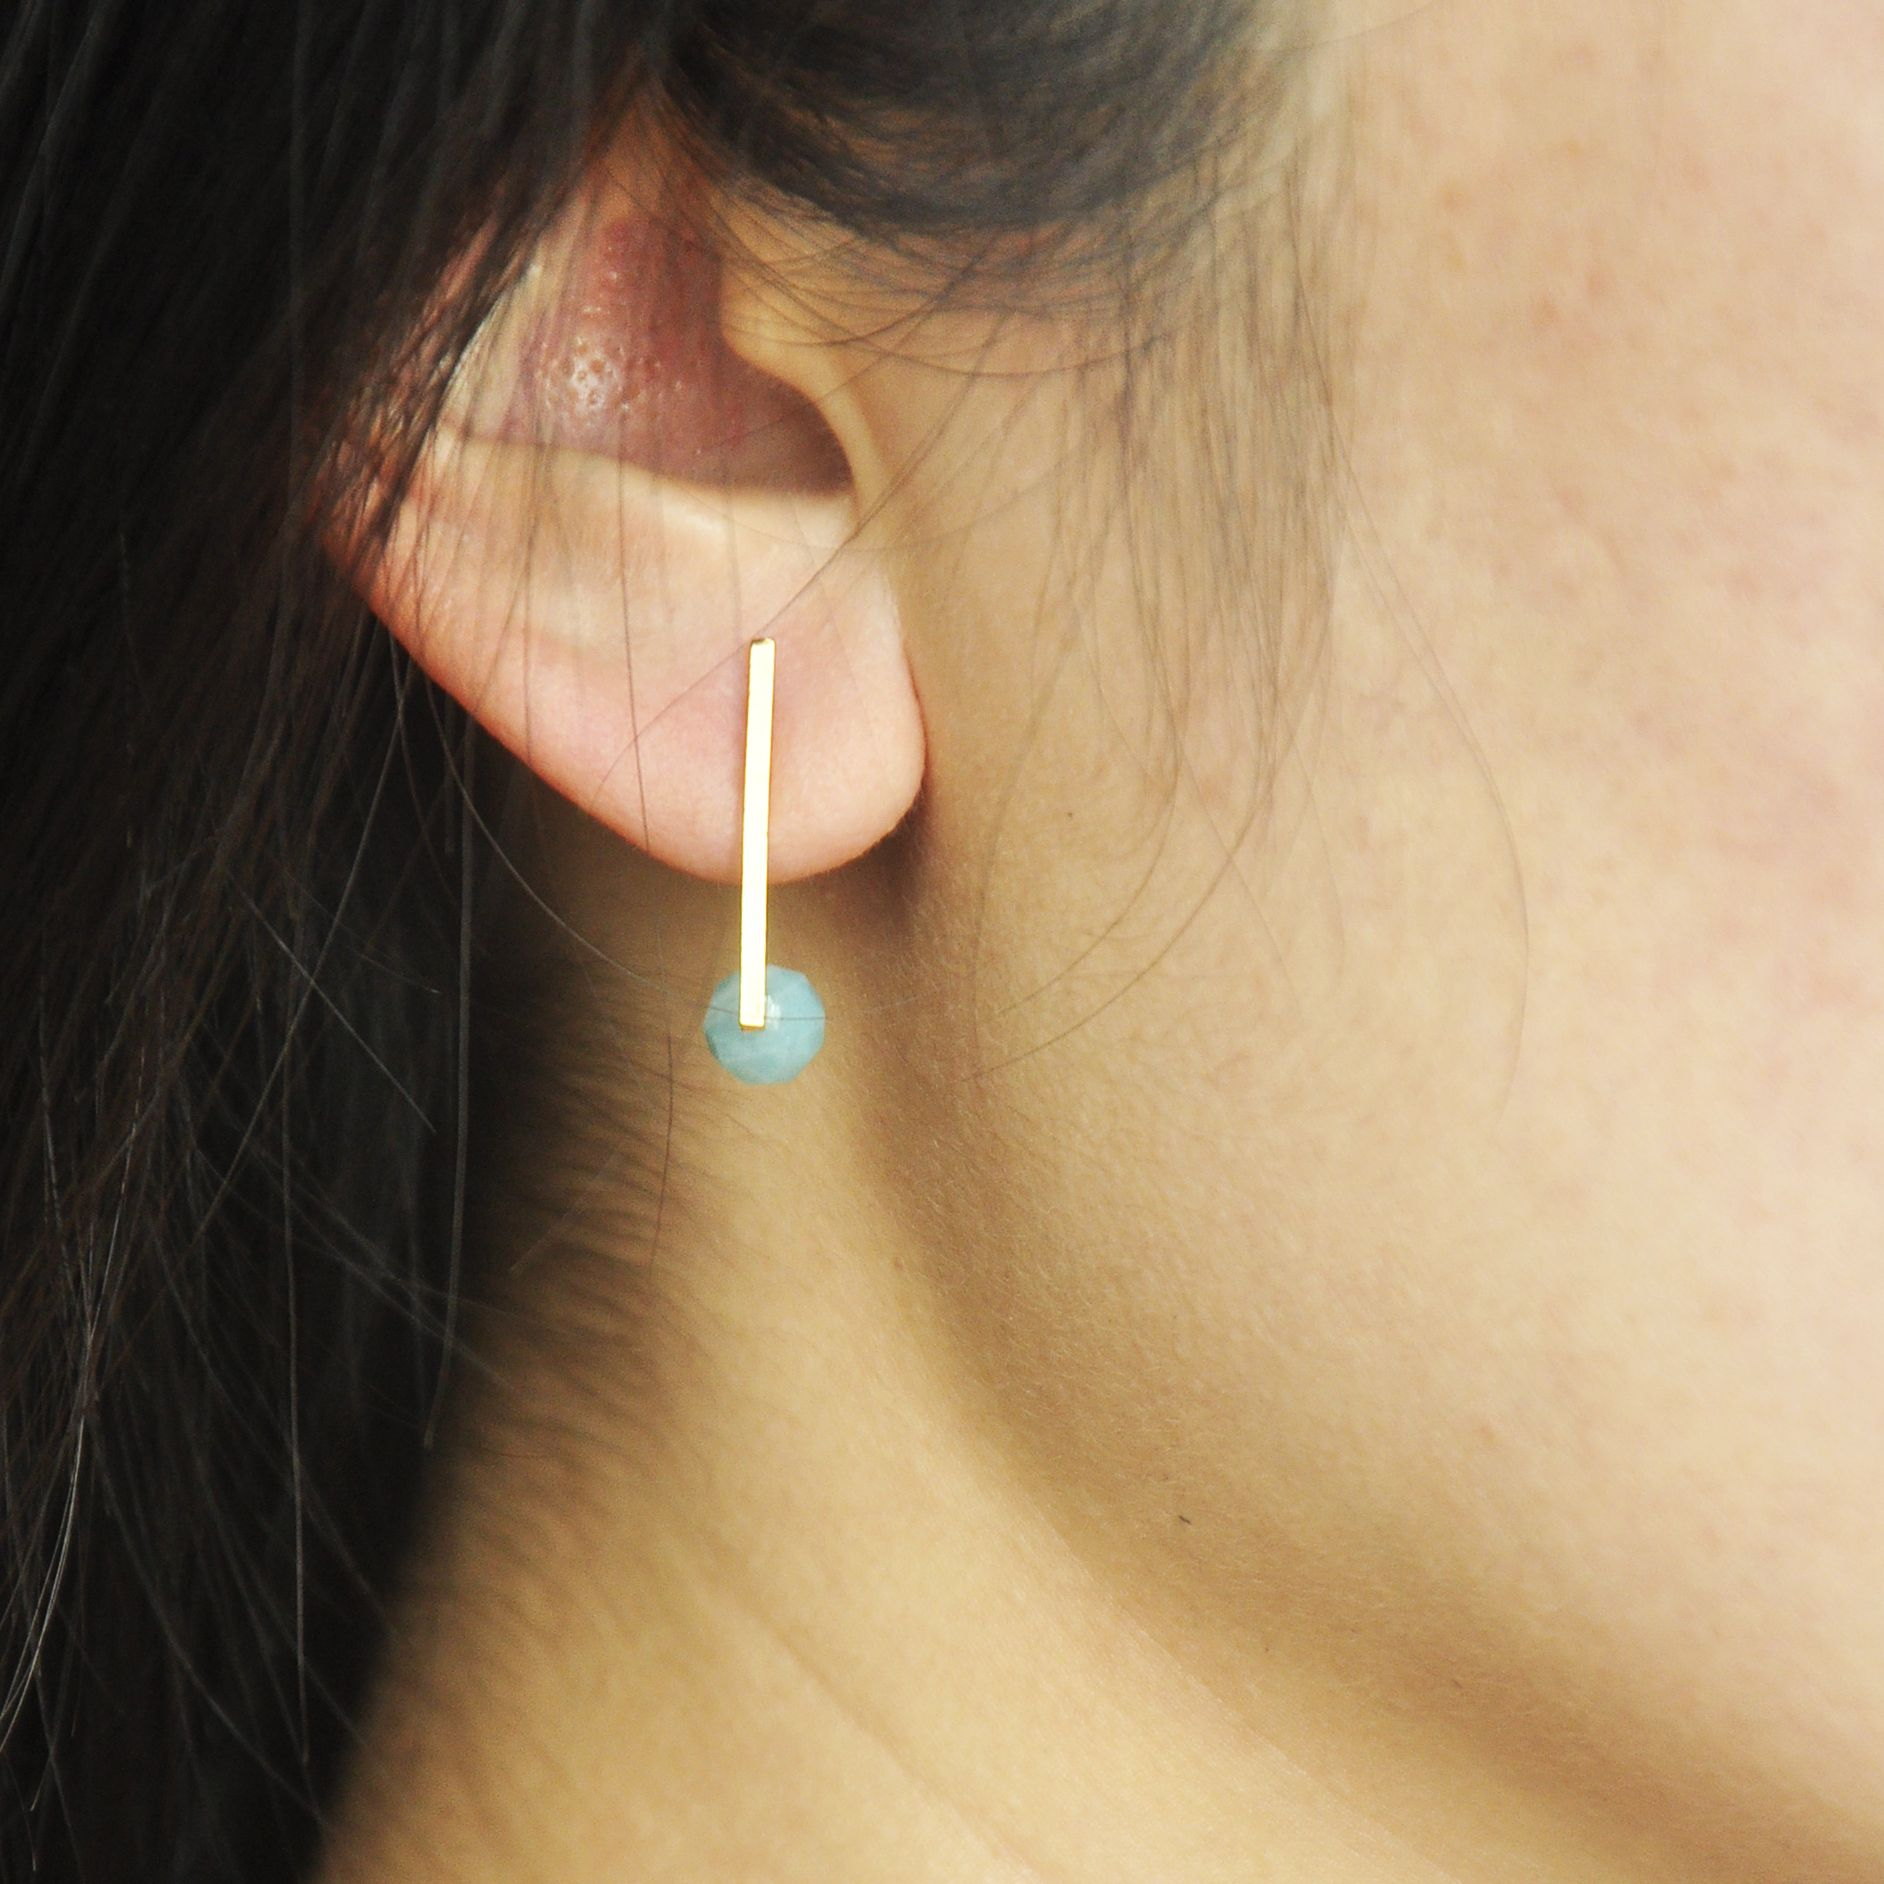 Nose piercing cover up band aid  Pin by HanChan Cheng on Cheng Jewelry  Pinterest